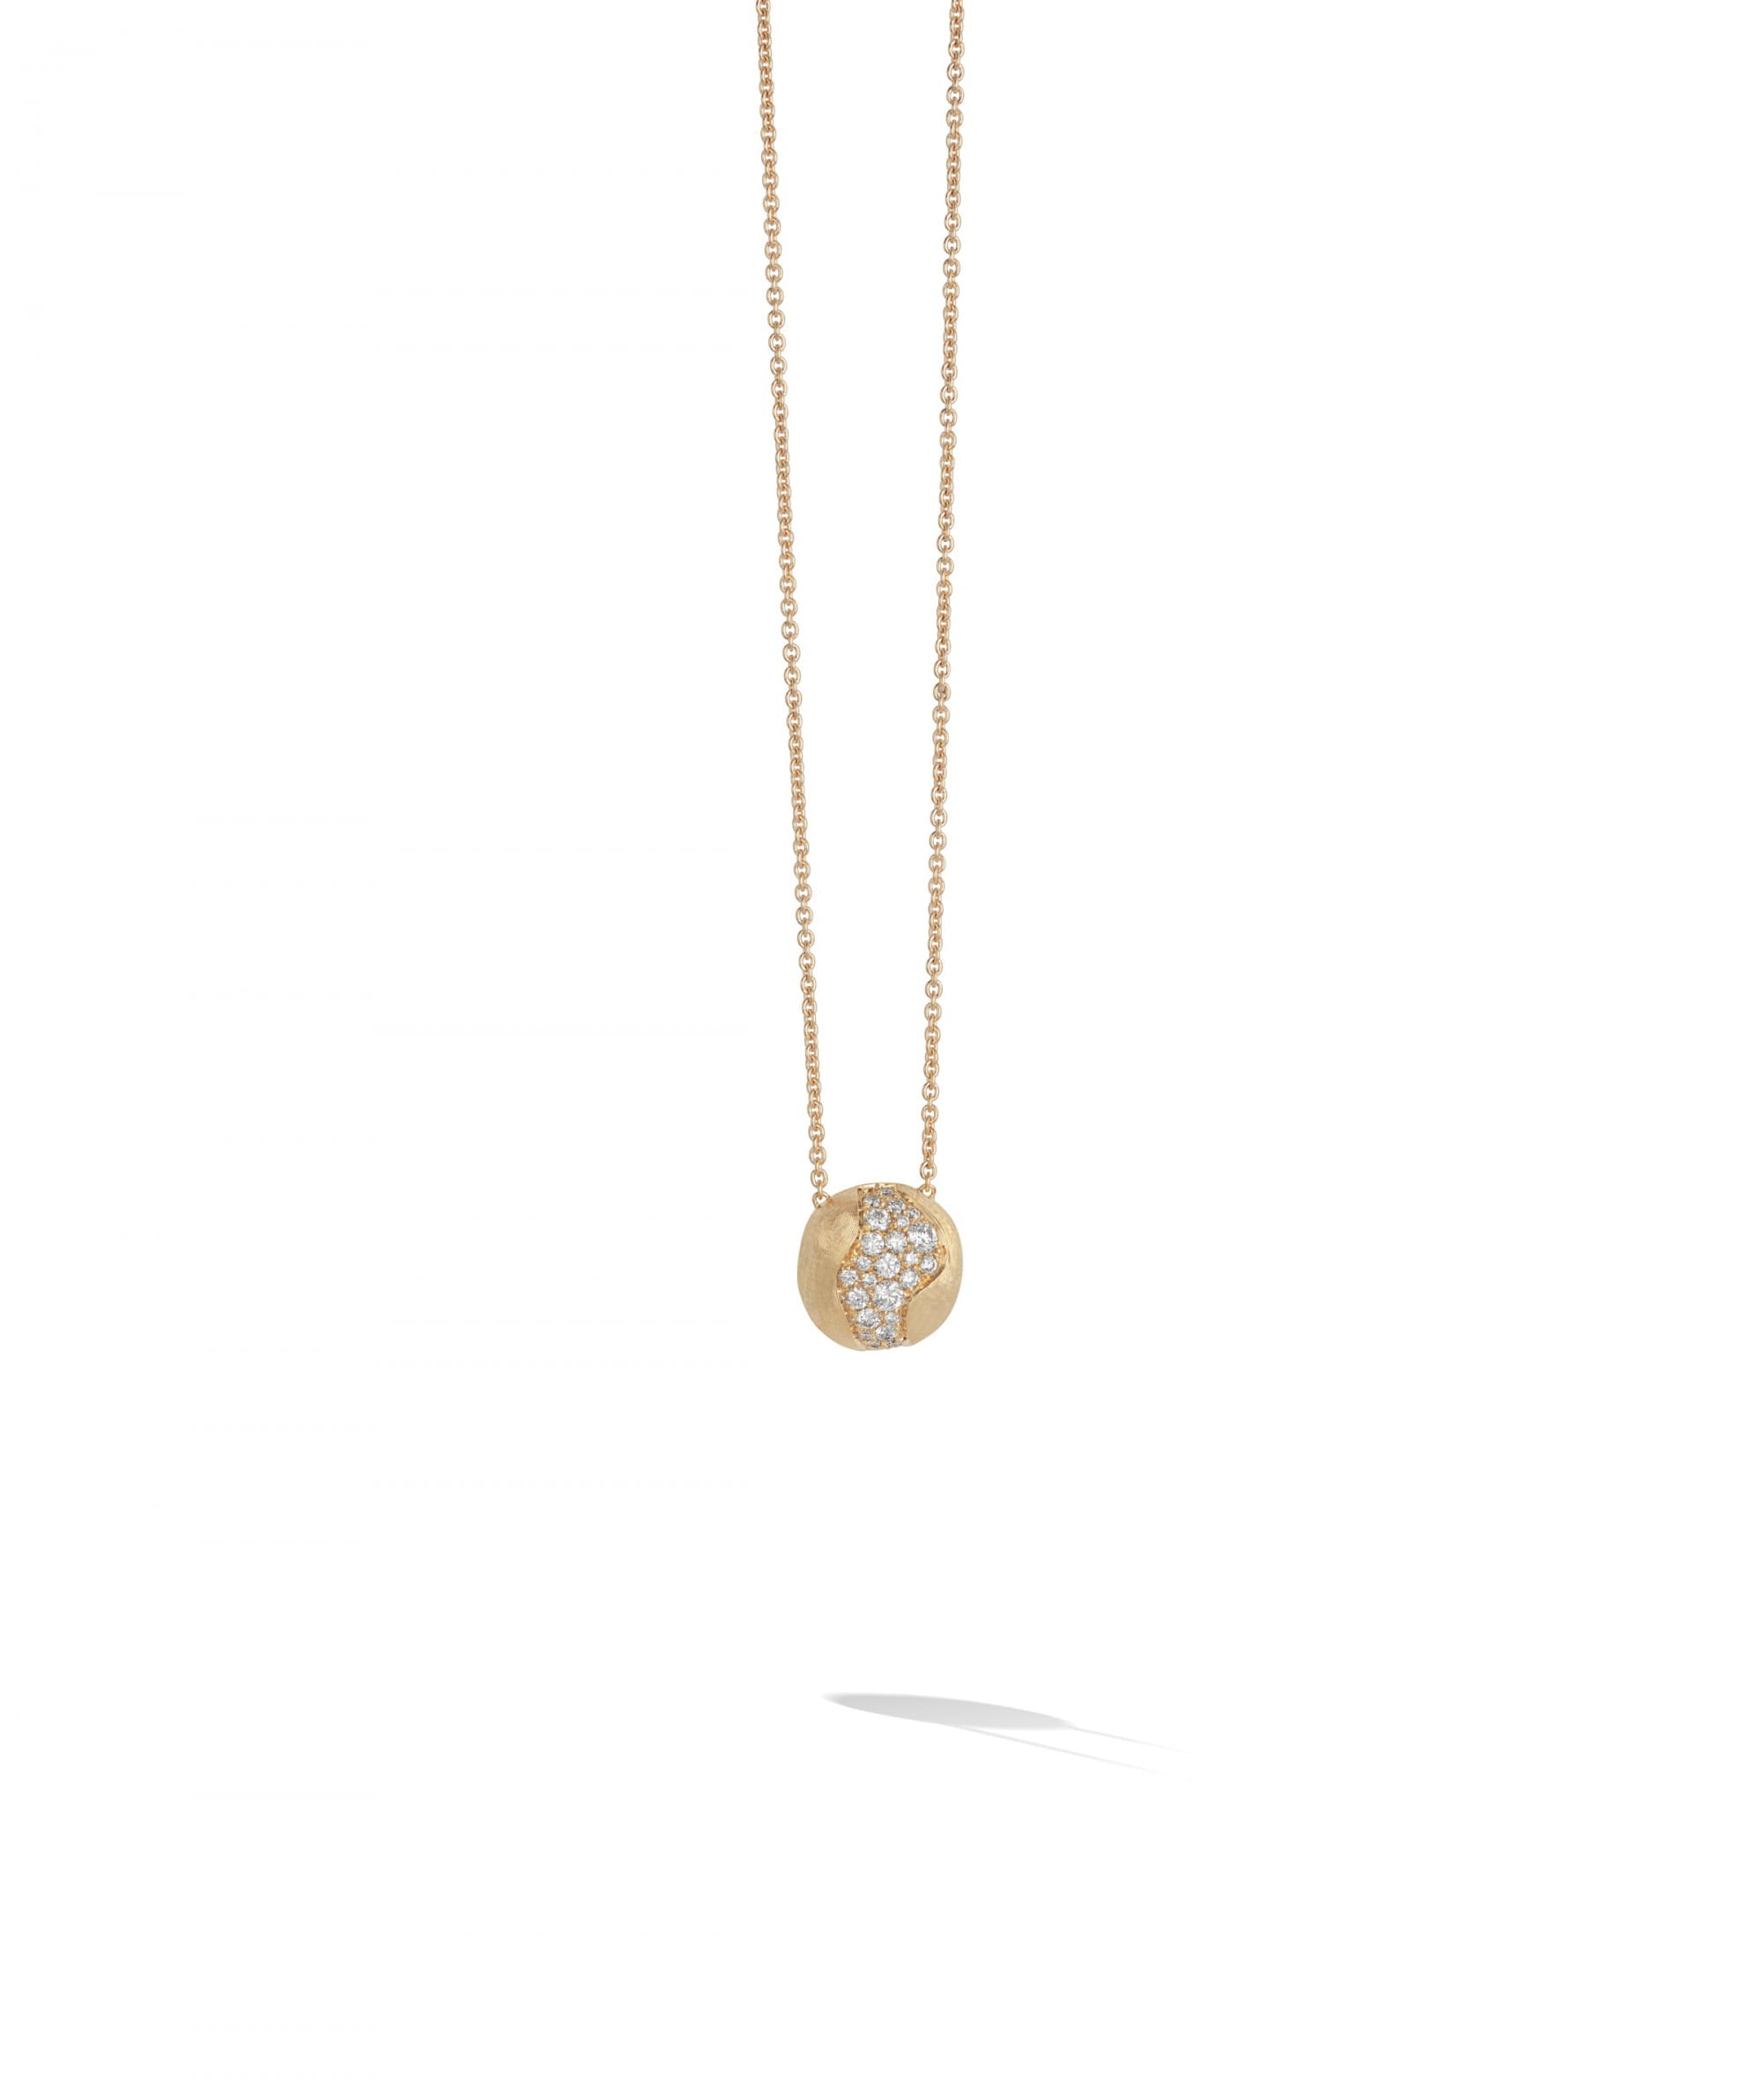 Marco Bicego Africa Constellation Necklace in 18k Yellow Gold with Diamonds Short - Orsini Jewellers NZ